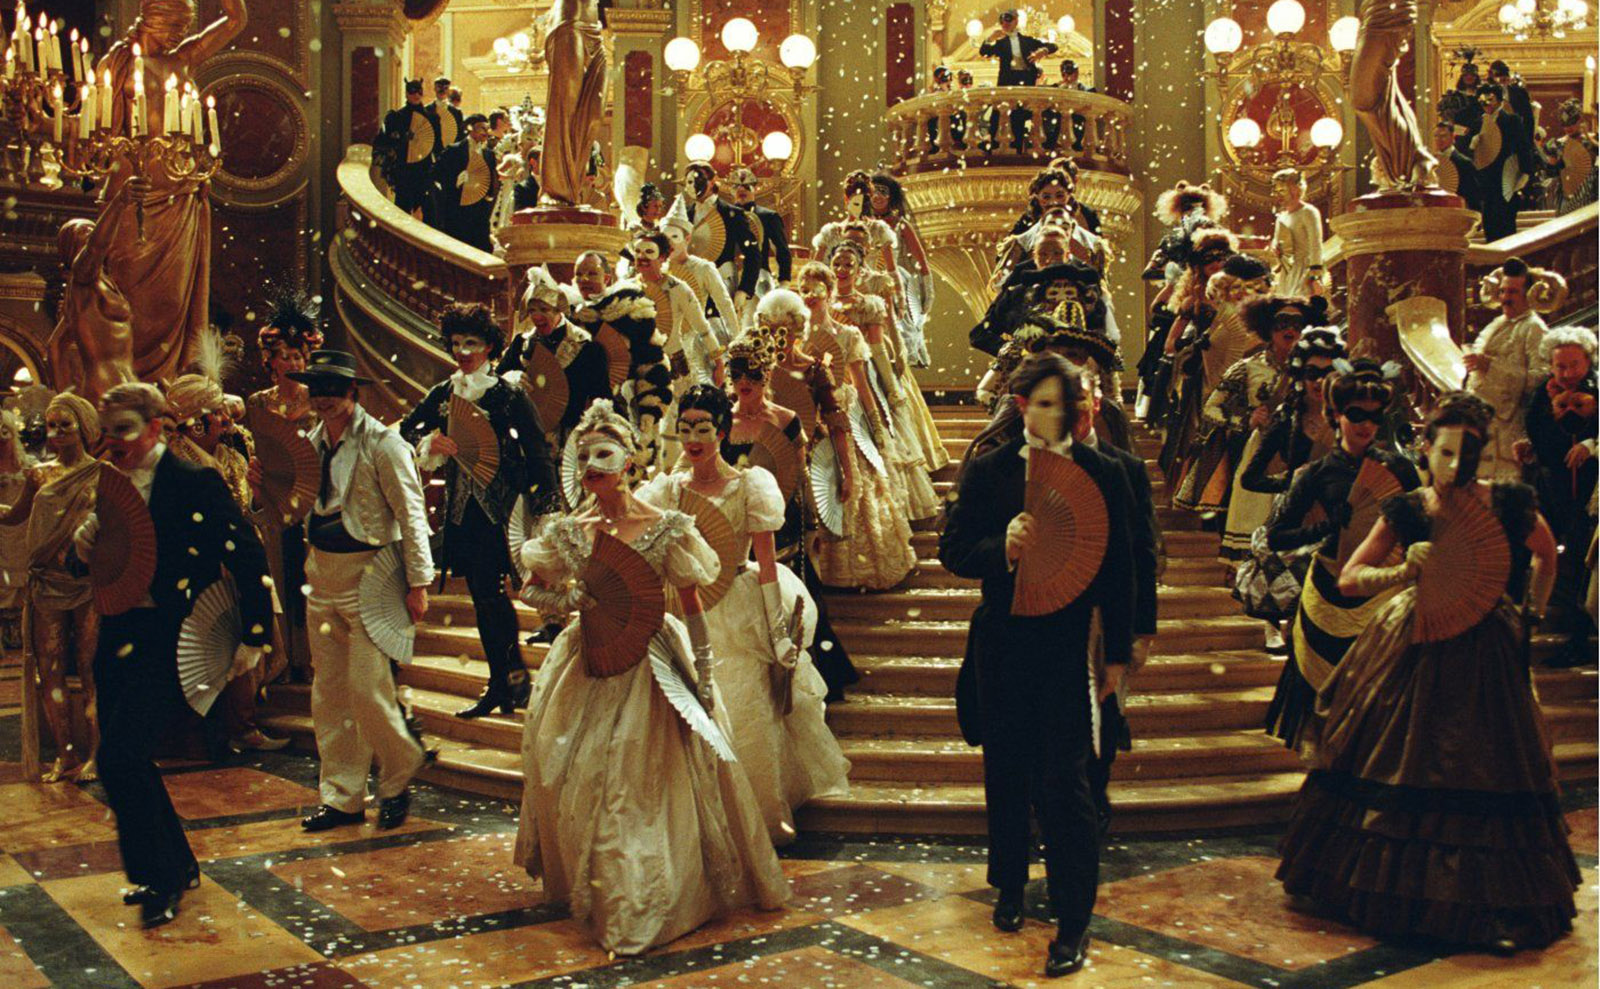 Ring in the New Year at a Glamorous Costume Party with 'The Snow Ball'